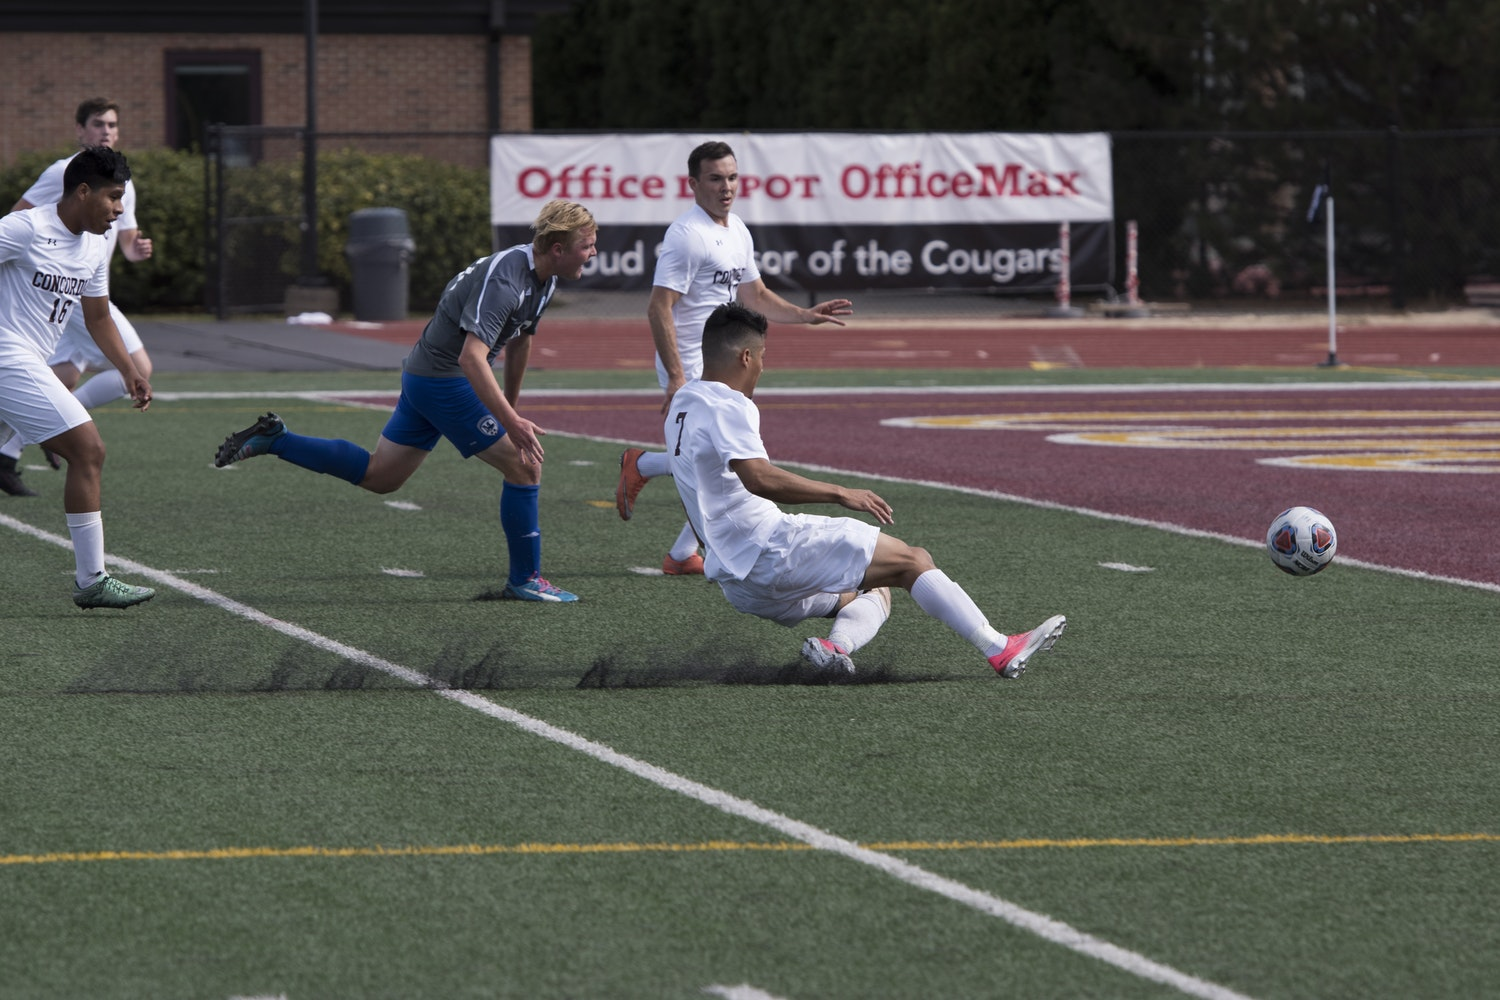 Soccer Players Like The Ones Shown Here Are Particularly Well Positioned To Experience The Benefits Of Ankle Braces